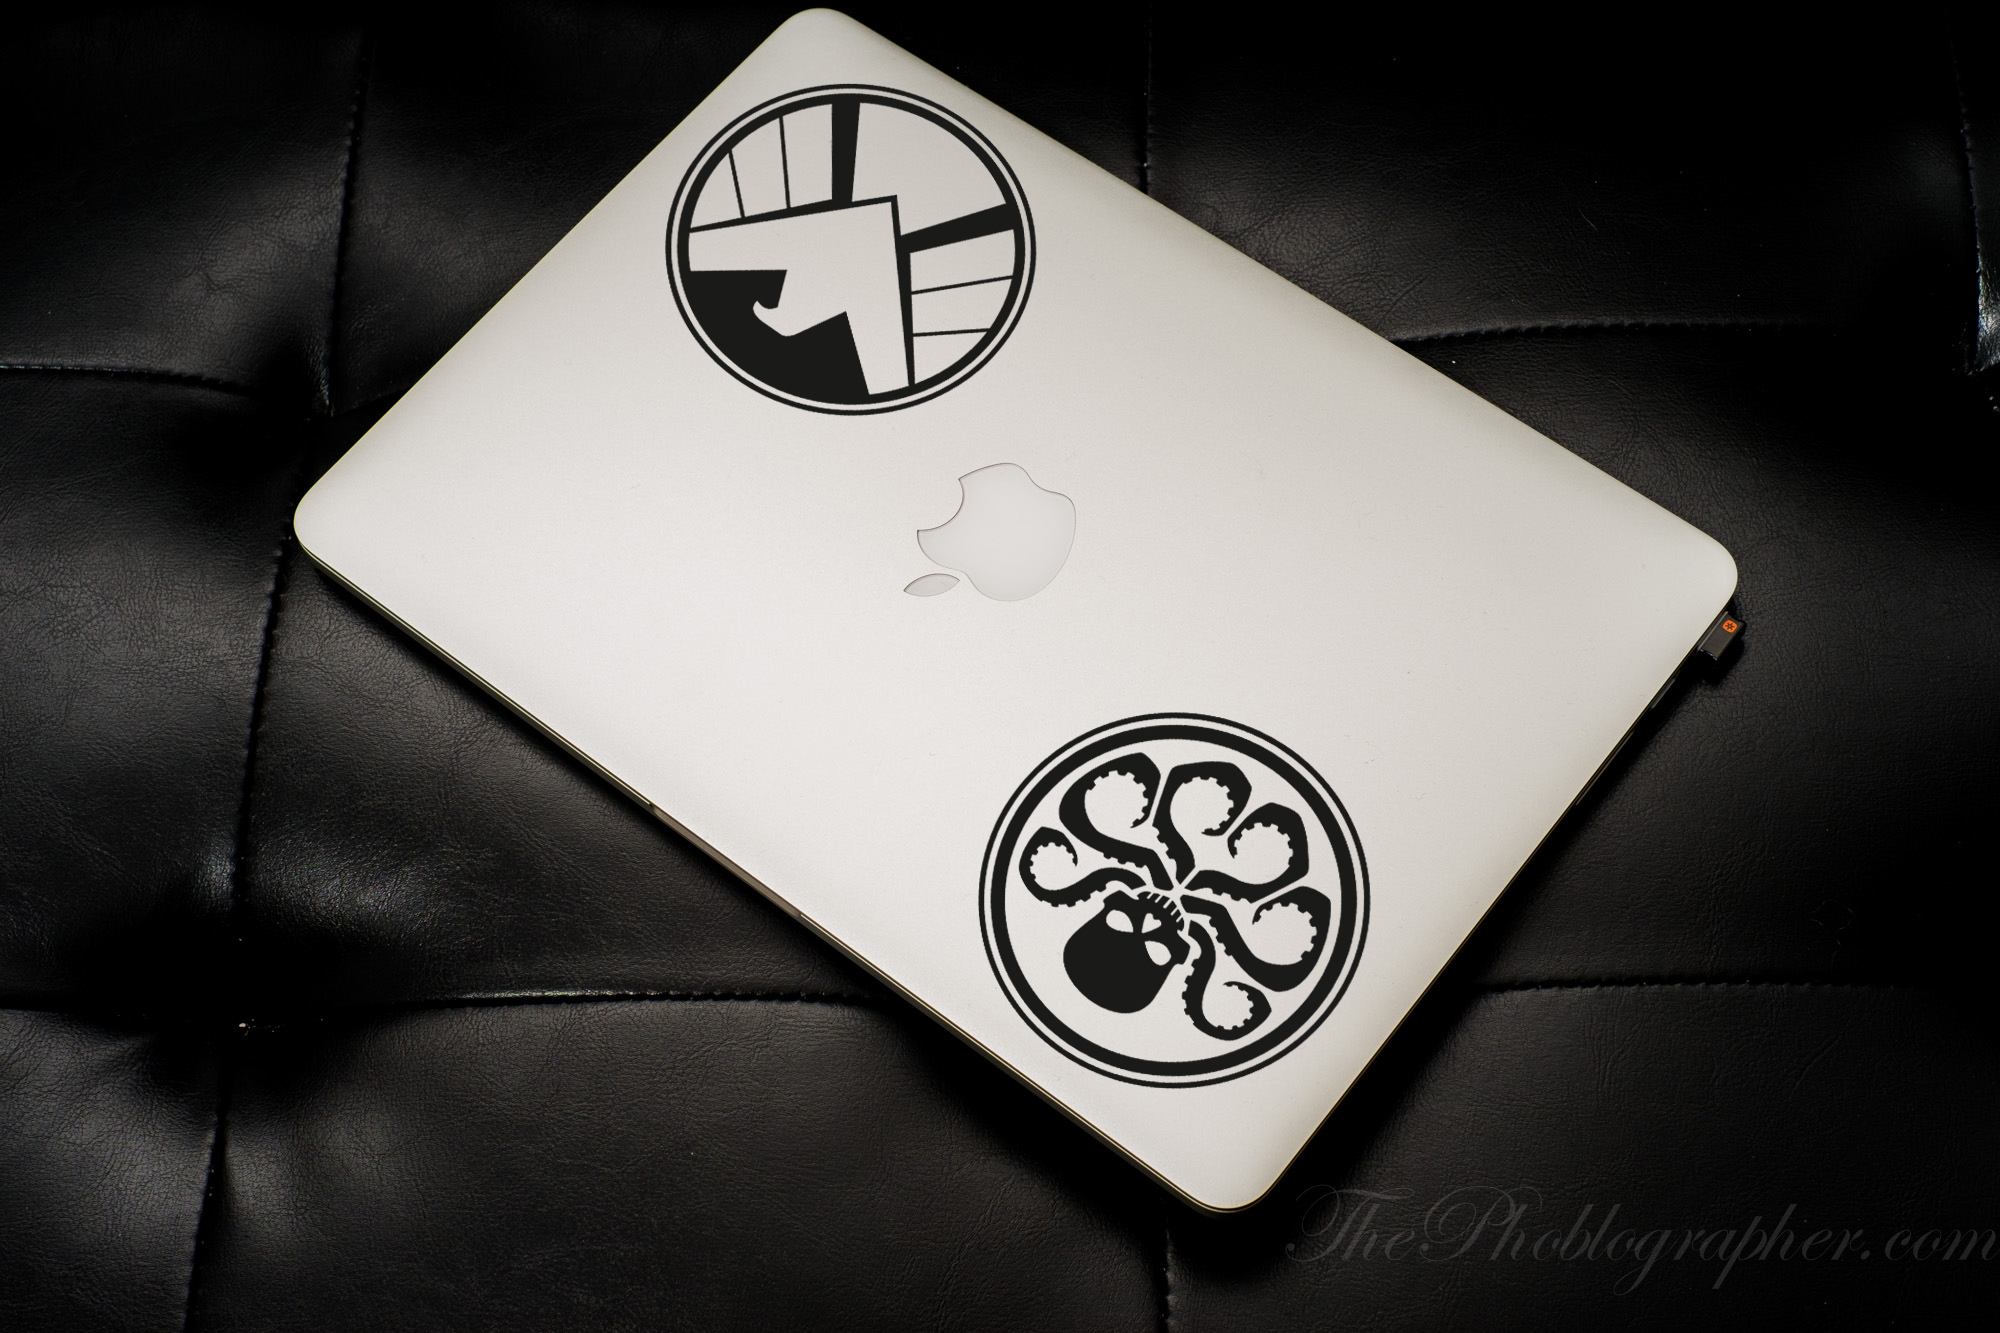 2in1 Logo Agents of S.H.I.E.L.D. Logo Shield Hydra Comics Avengers Car Laptop Vynil Sticker Decal